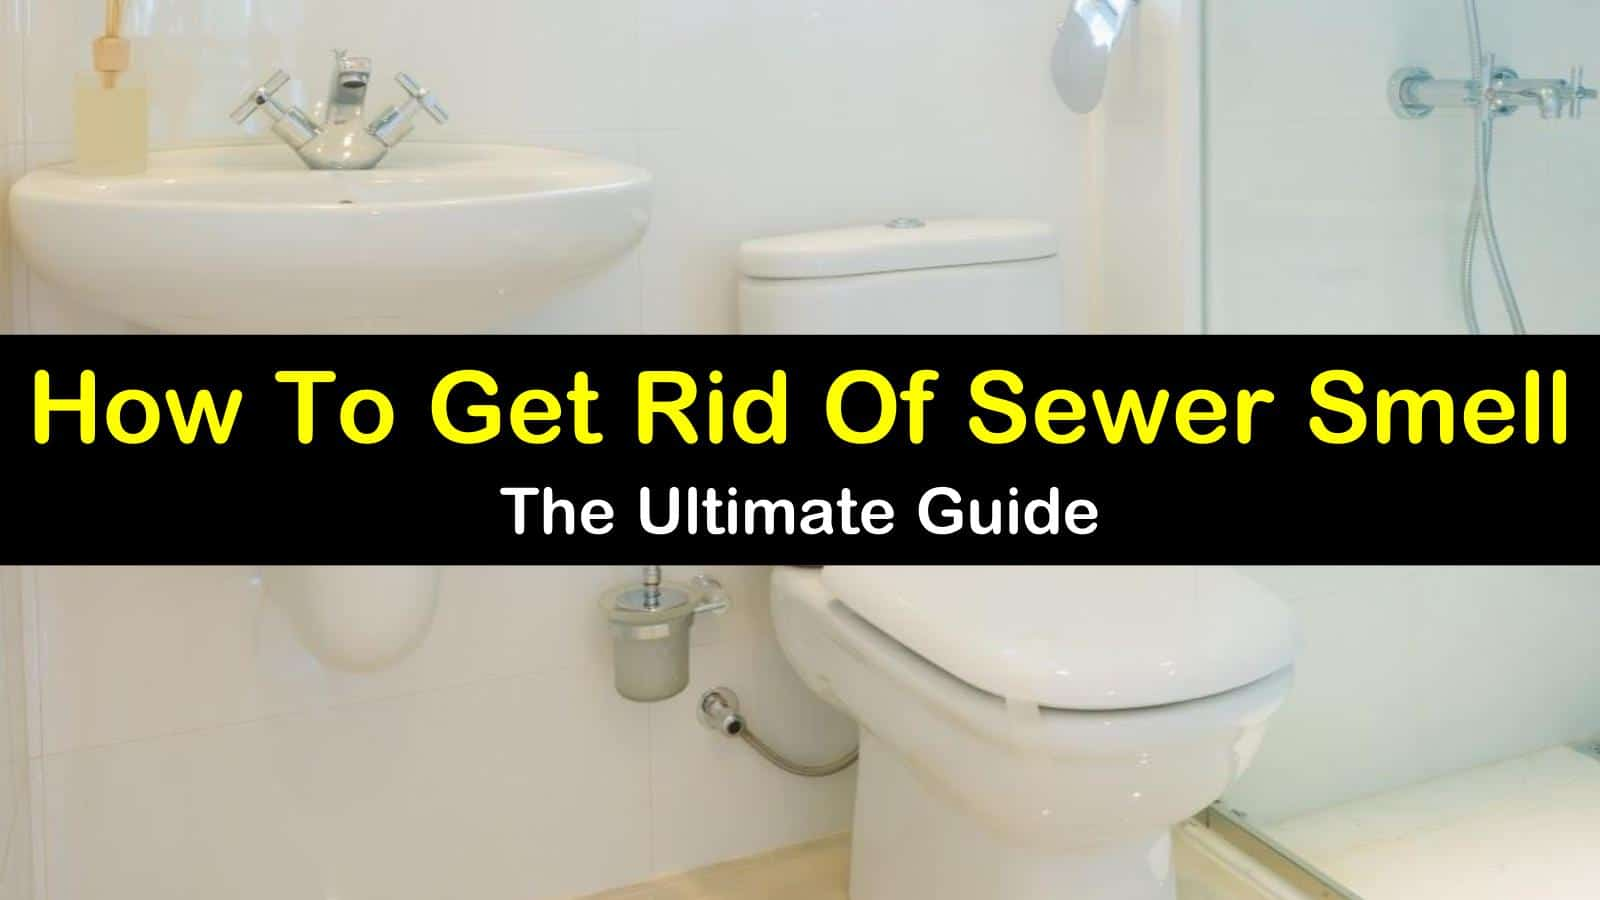 How To Get Rid Of Sewer Smell In Your House From Basements